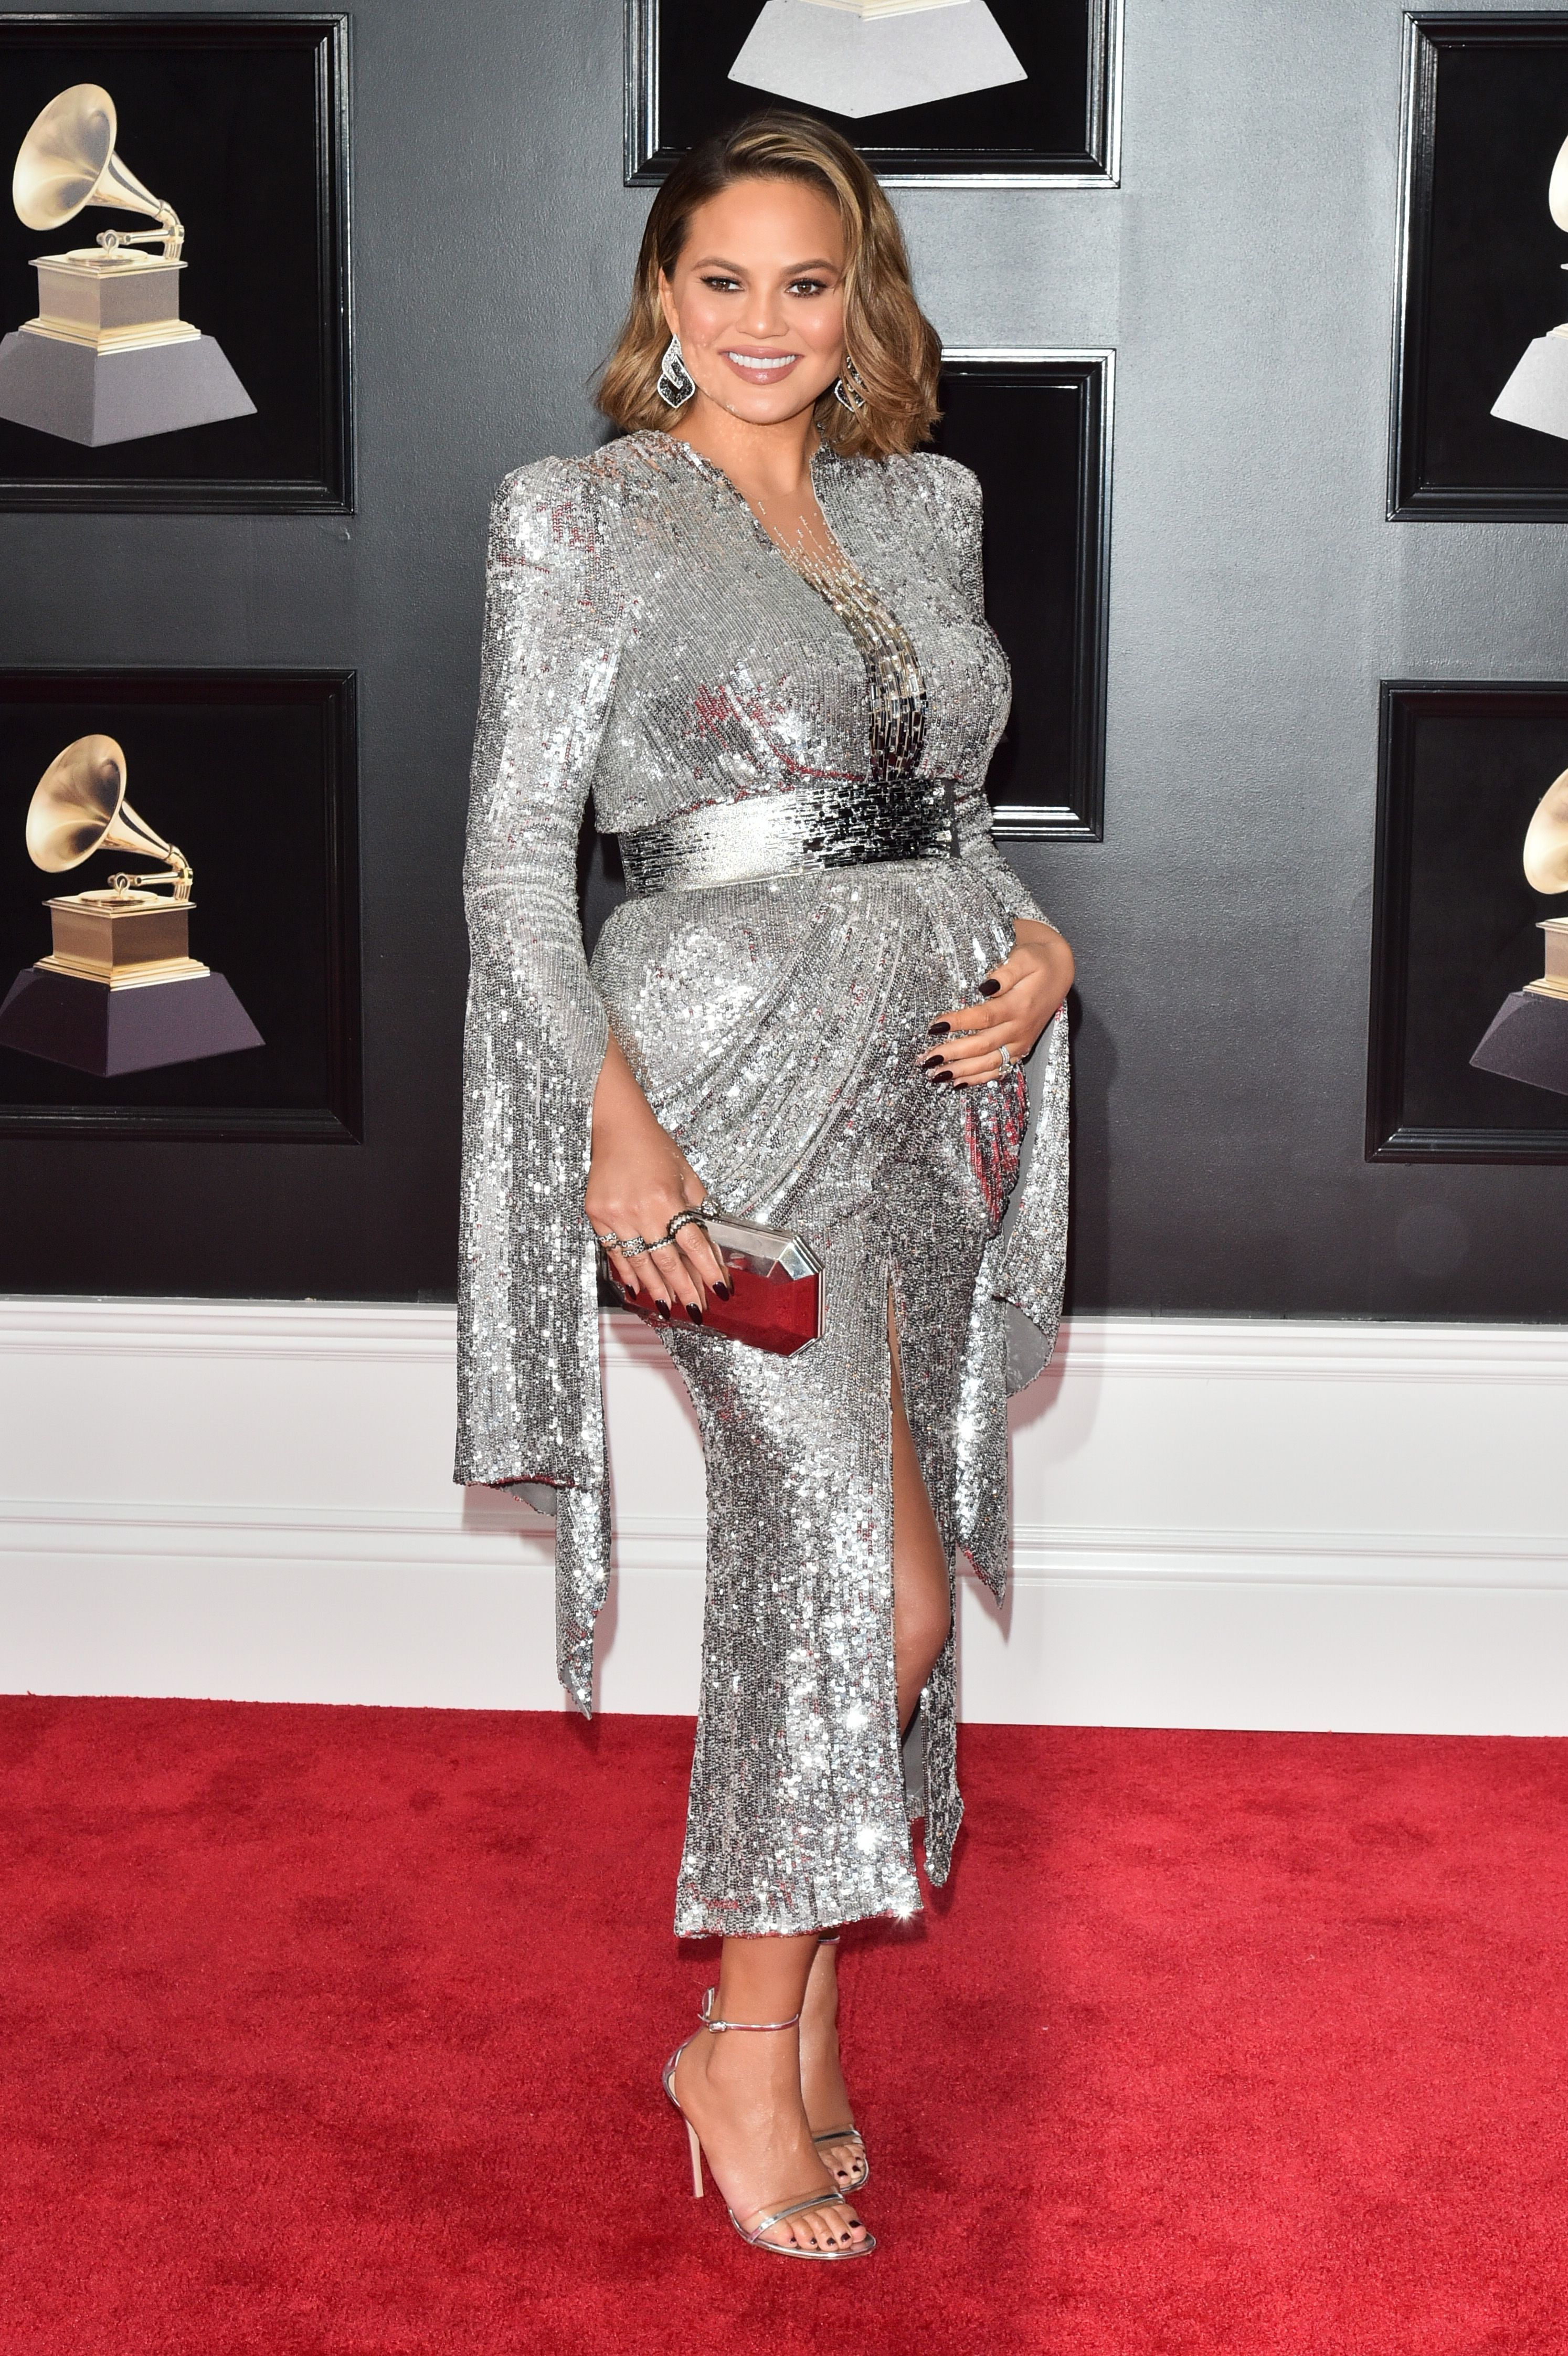 8dc0bf7465846 At The Grammy's, Celebrities Add Color To The #TimesUp & #MeToo  Movements+#refinery29